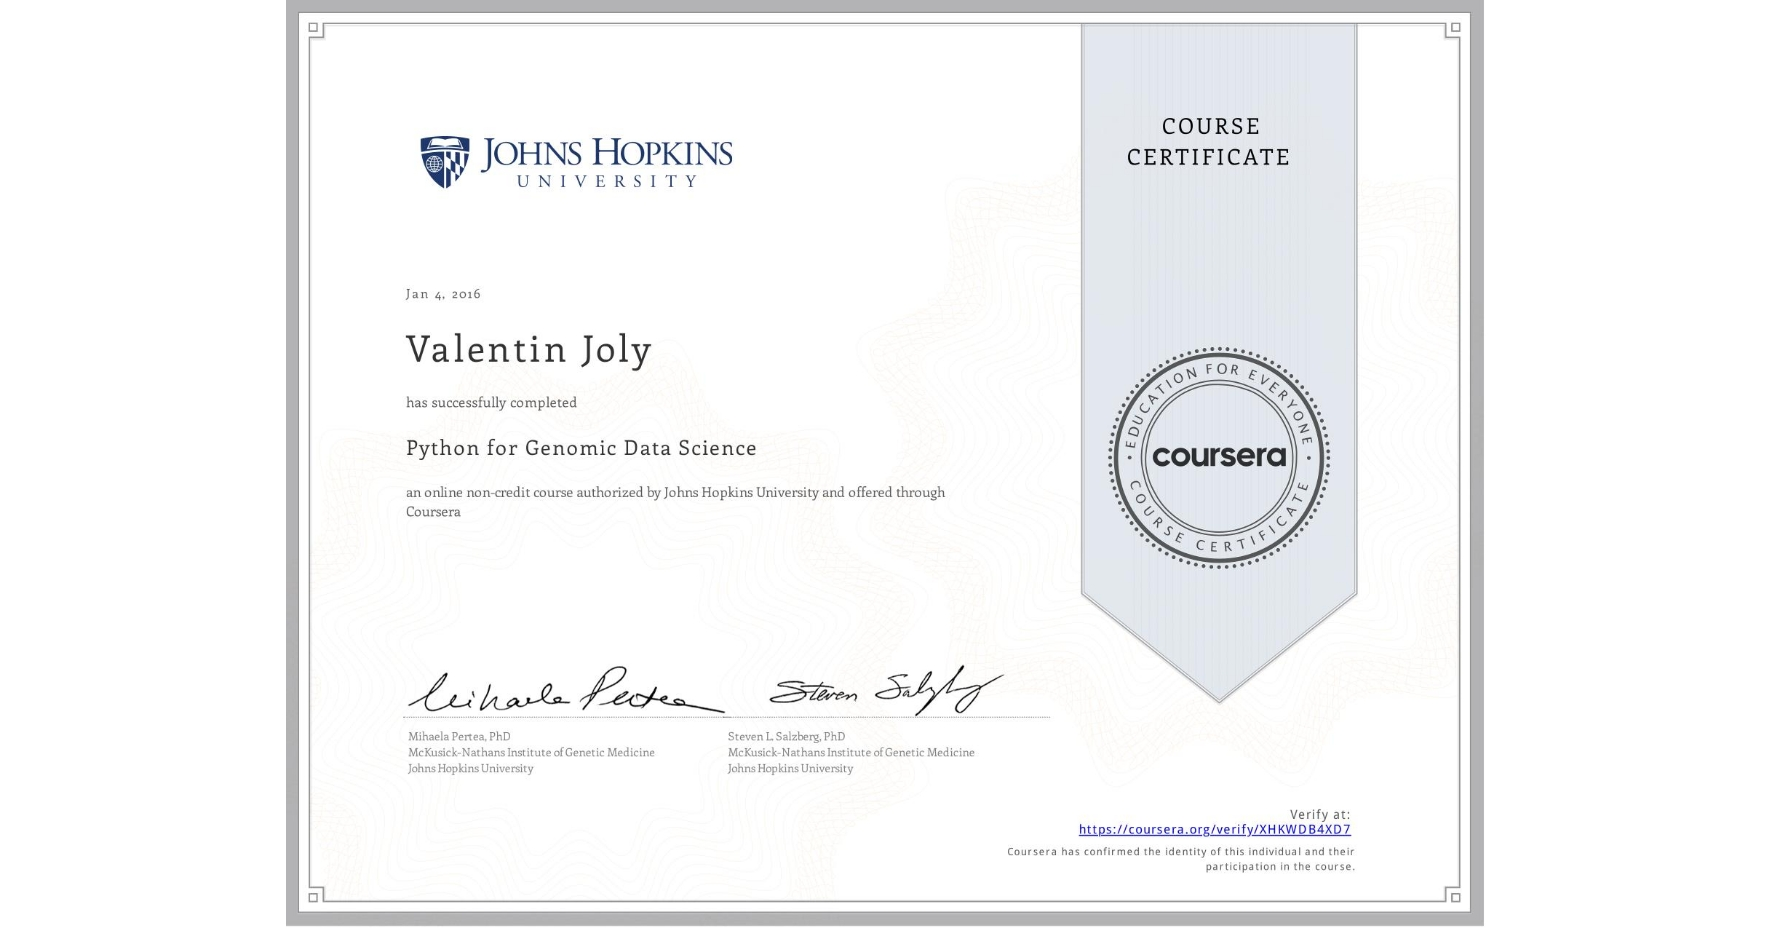 View certificate for Valentin Joly, Python for Genomic Data Science, an online non-credit course authorized by Johns Hopkins University and offered through Coursera